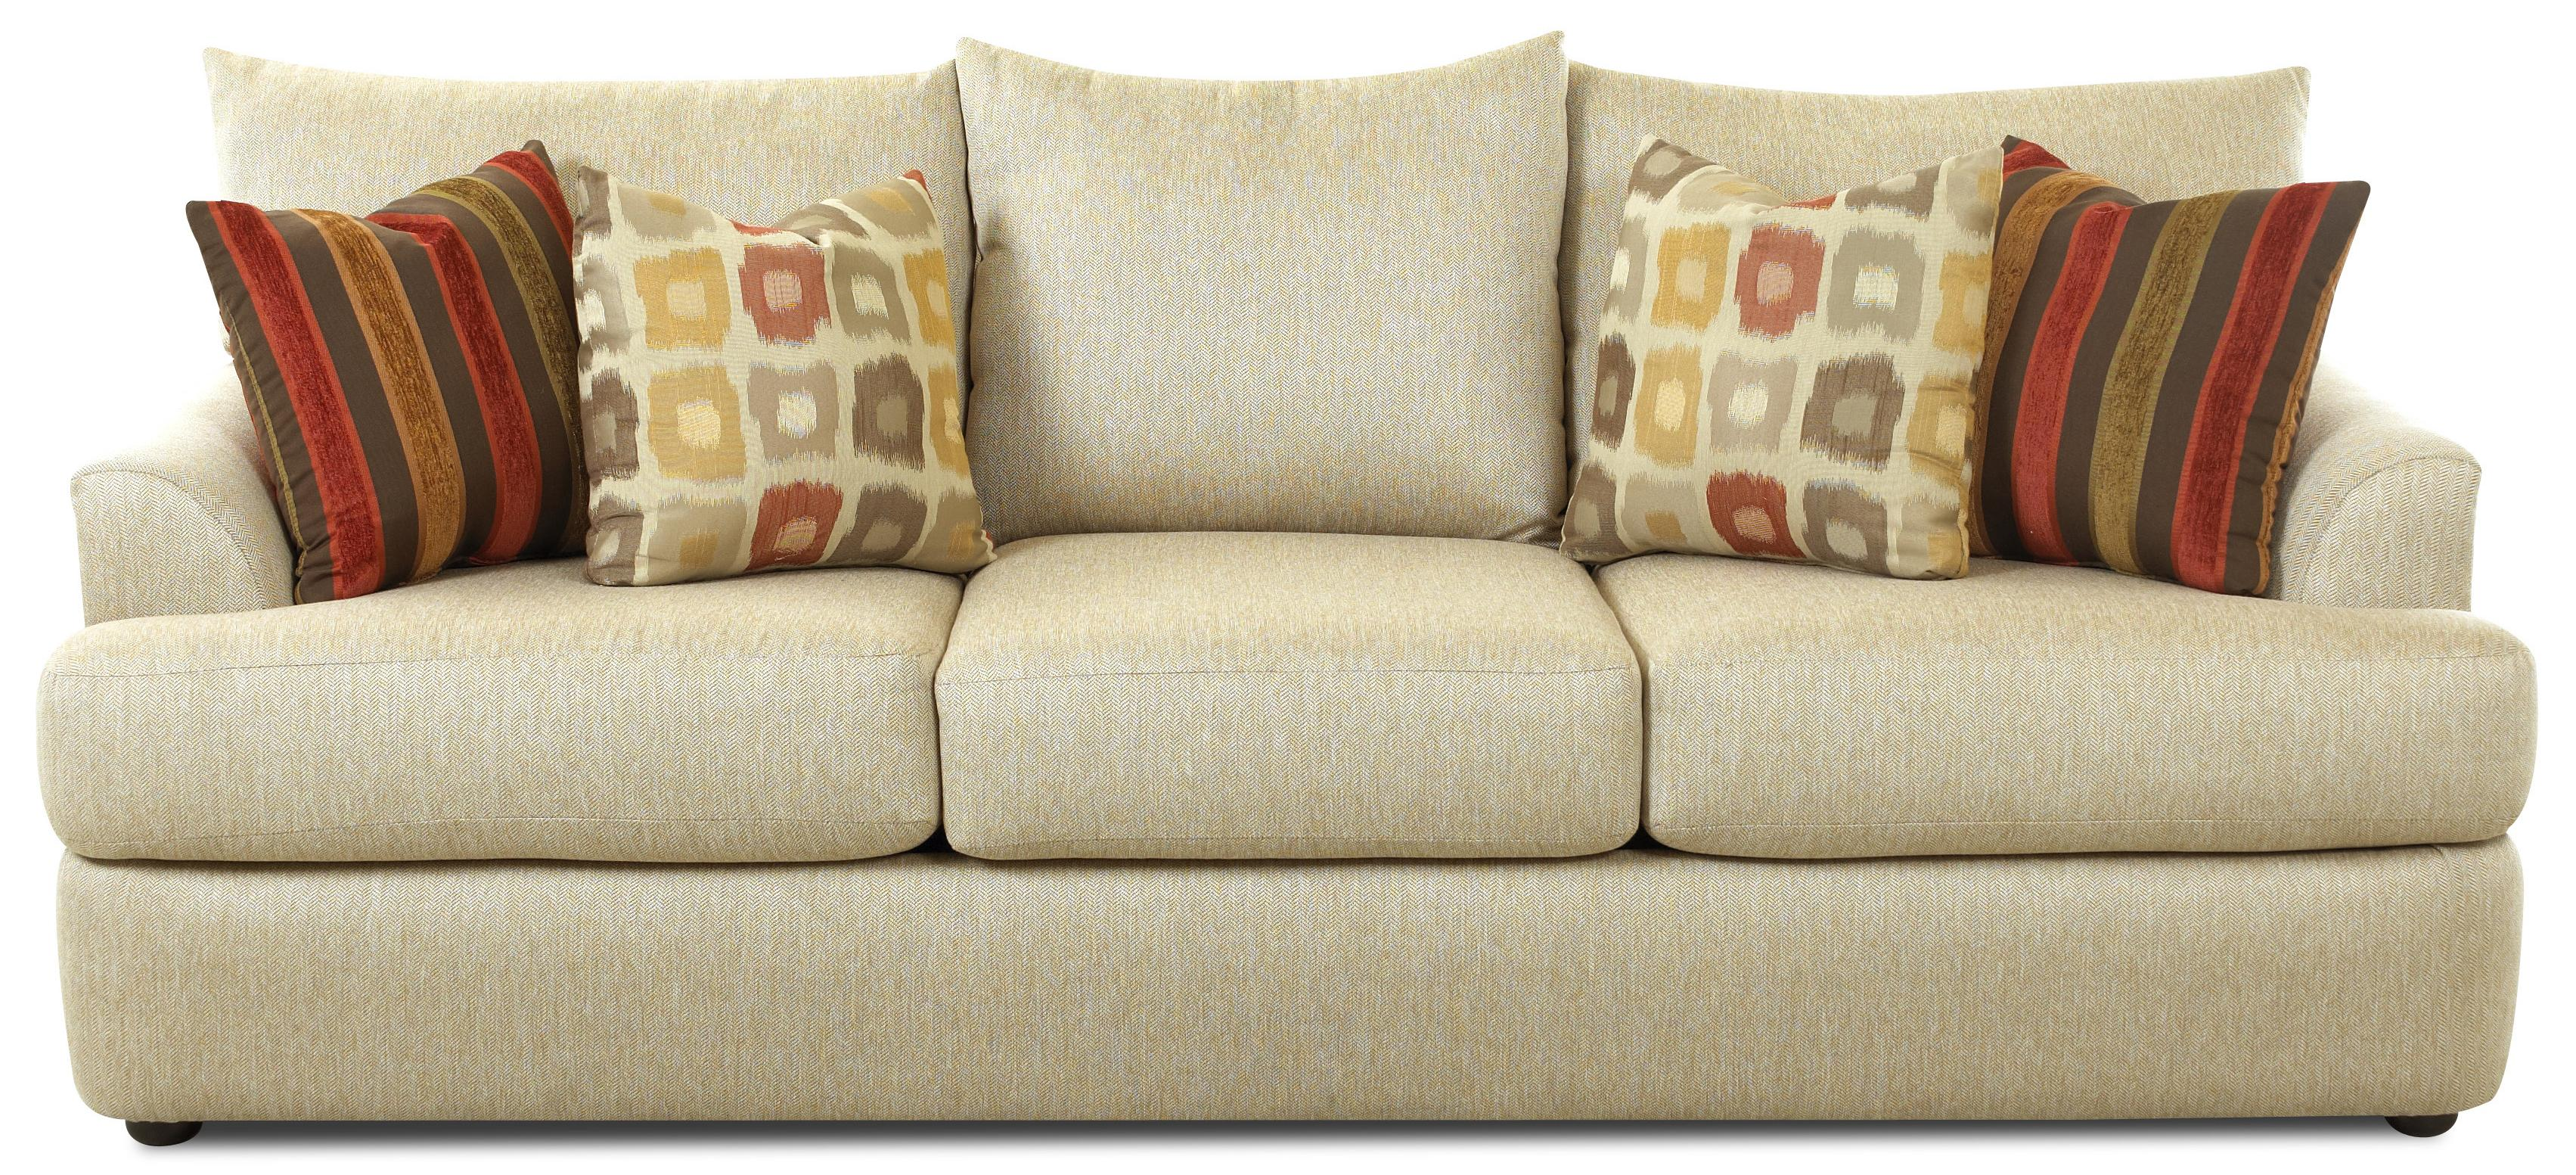 Belfort Basics Madison Stationary Sofa - Item Number: K56830-S